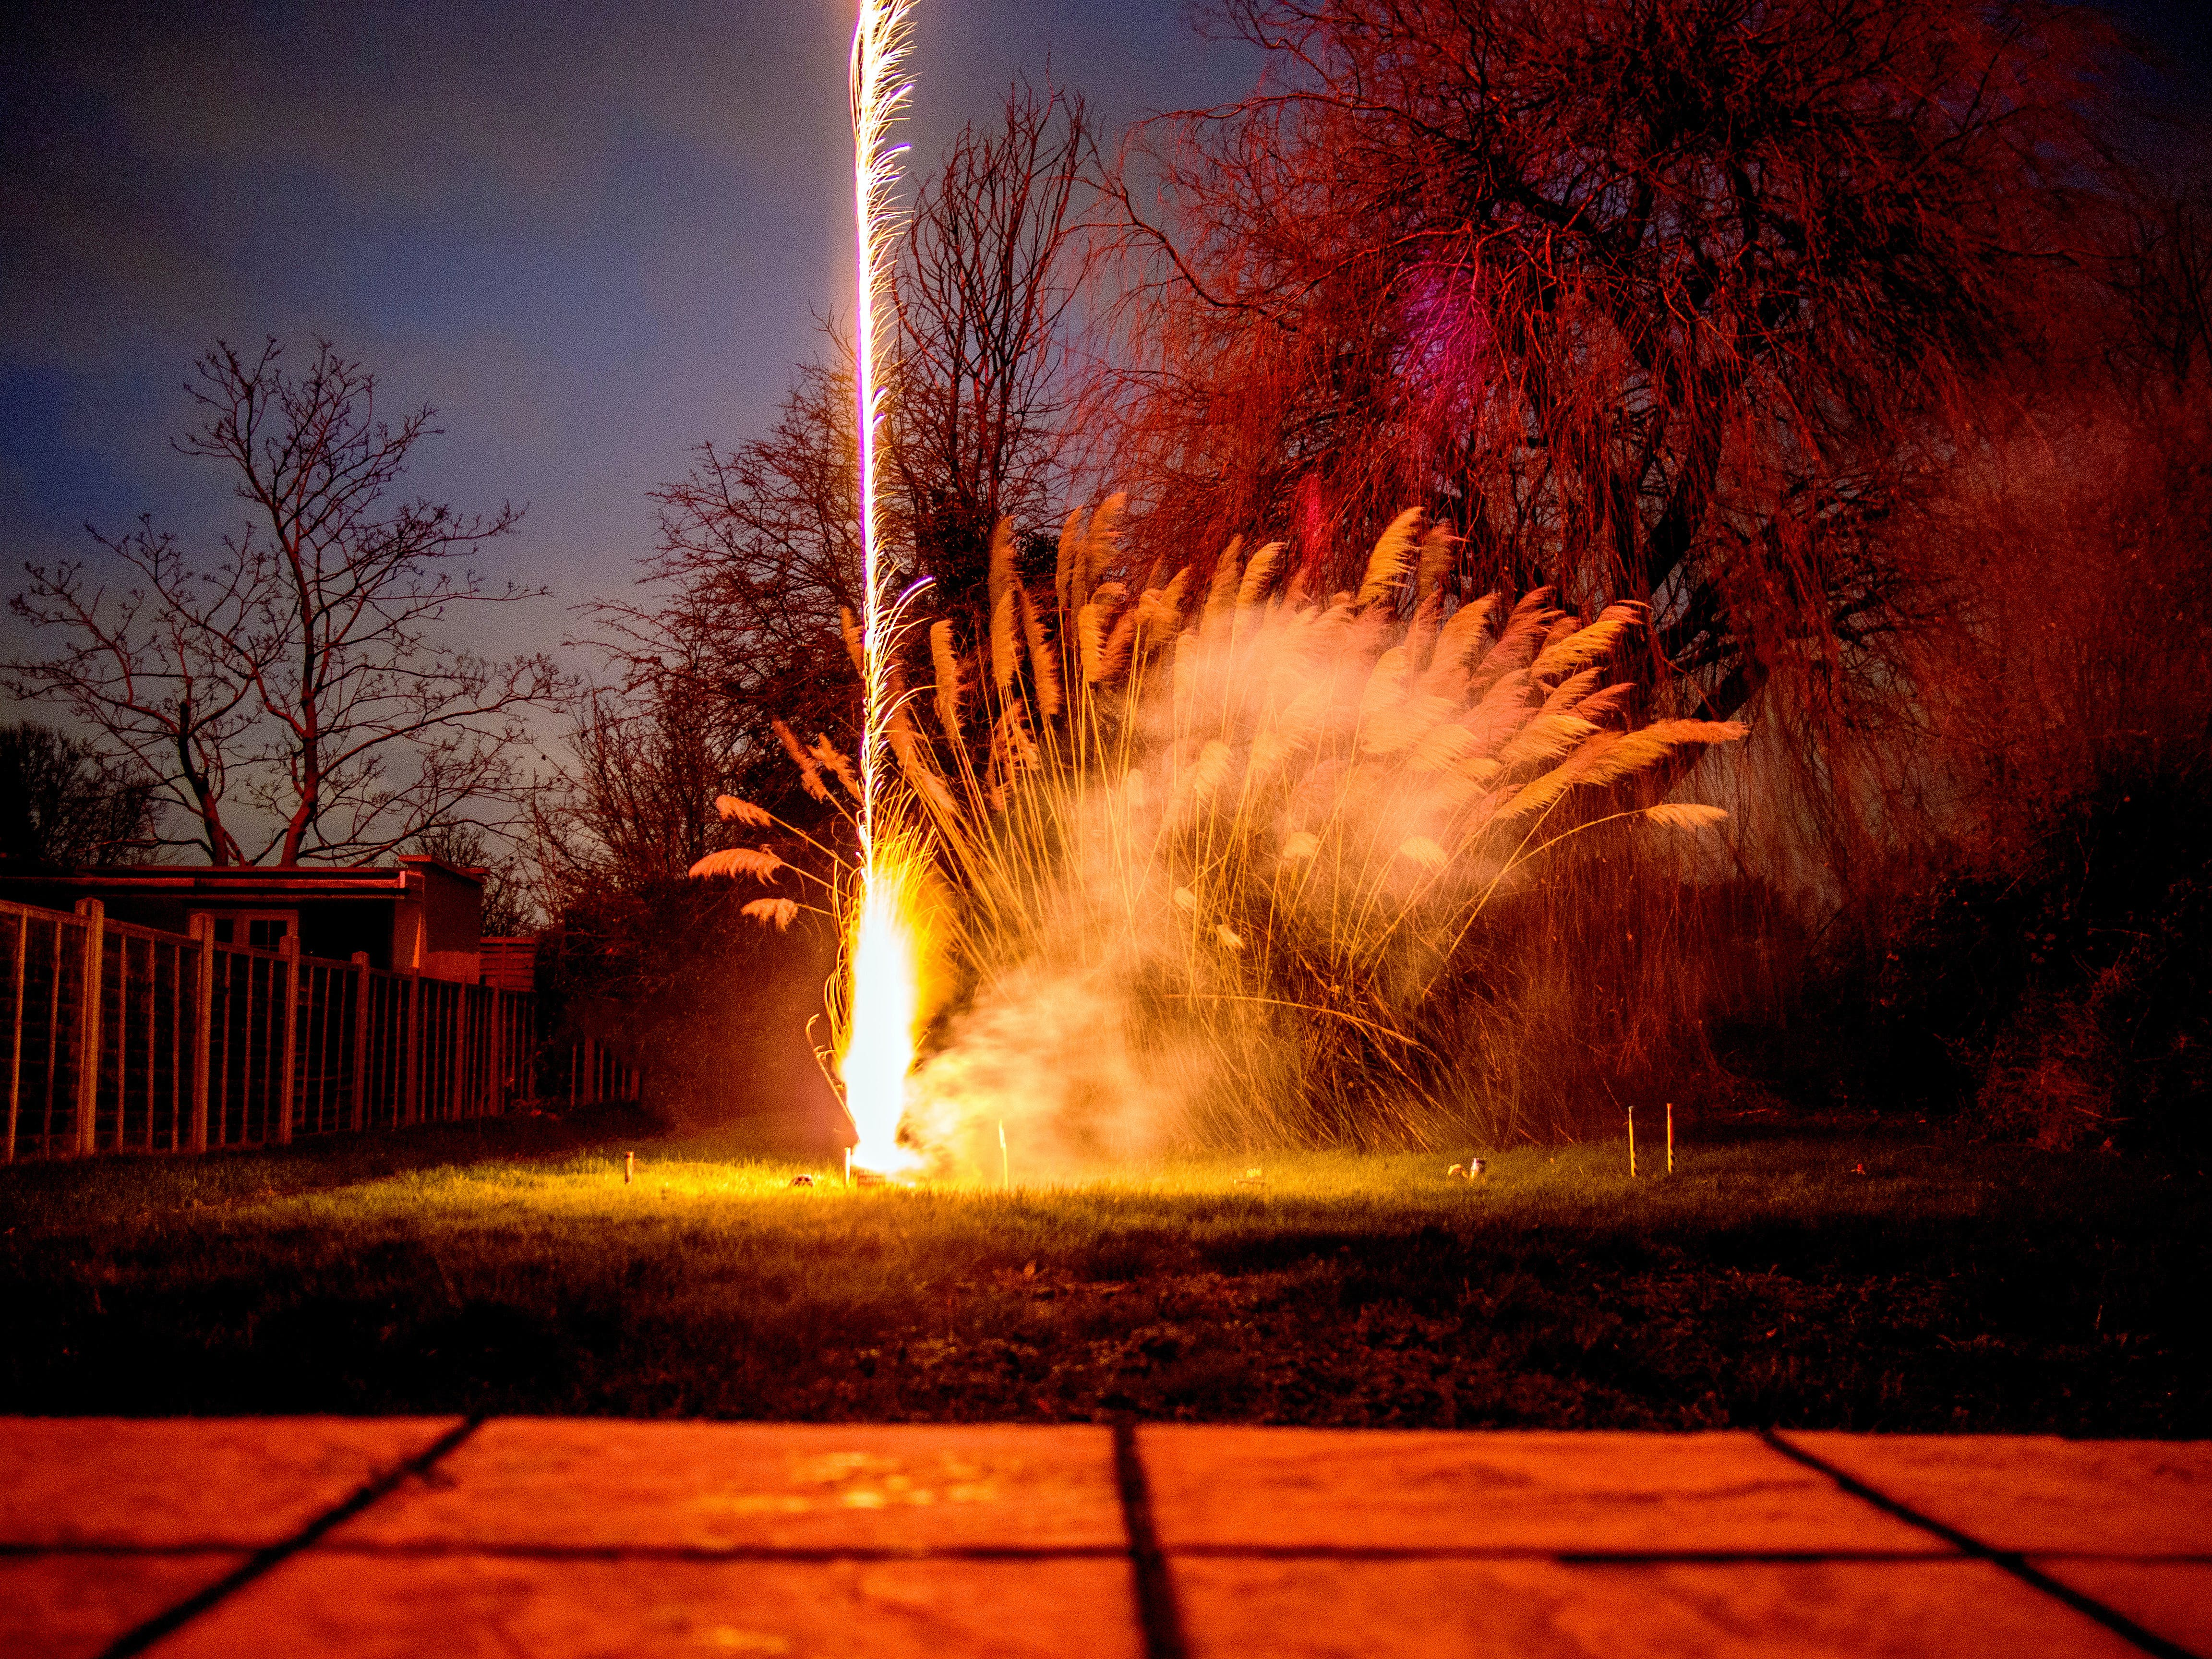 Time Lapse Photography of Firework during Nighttime